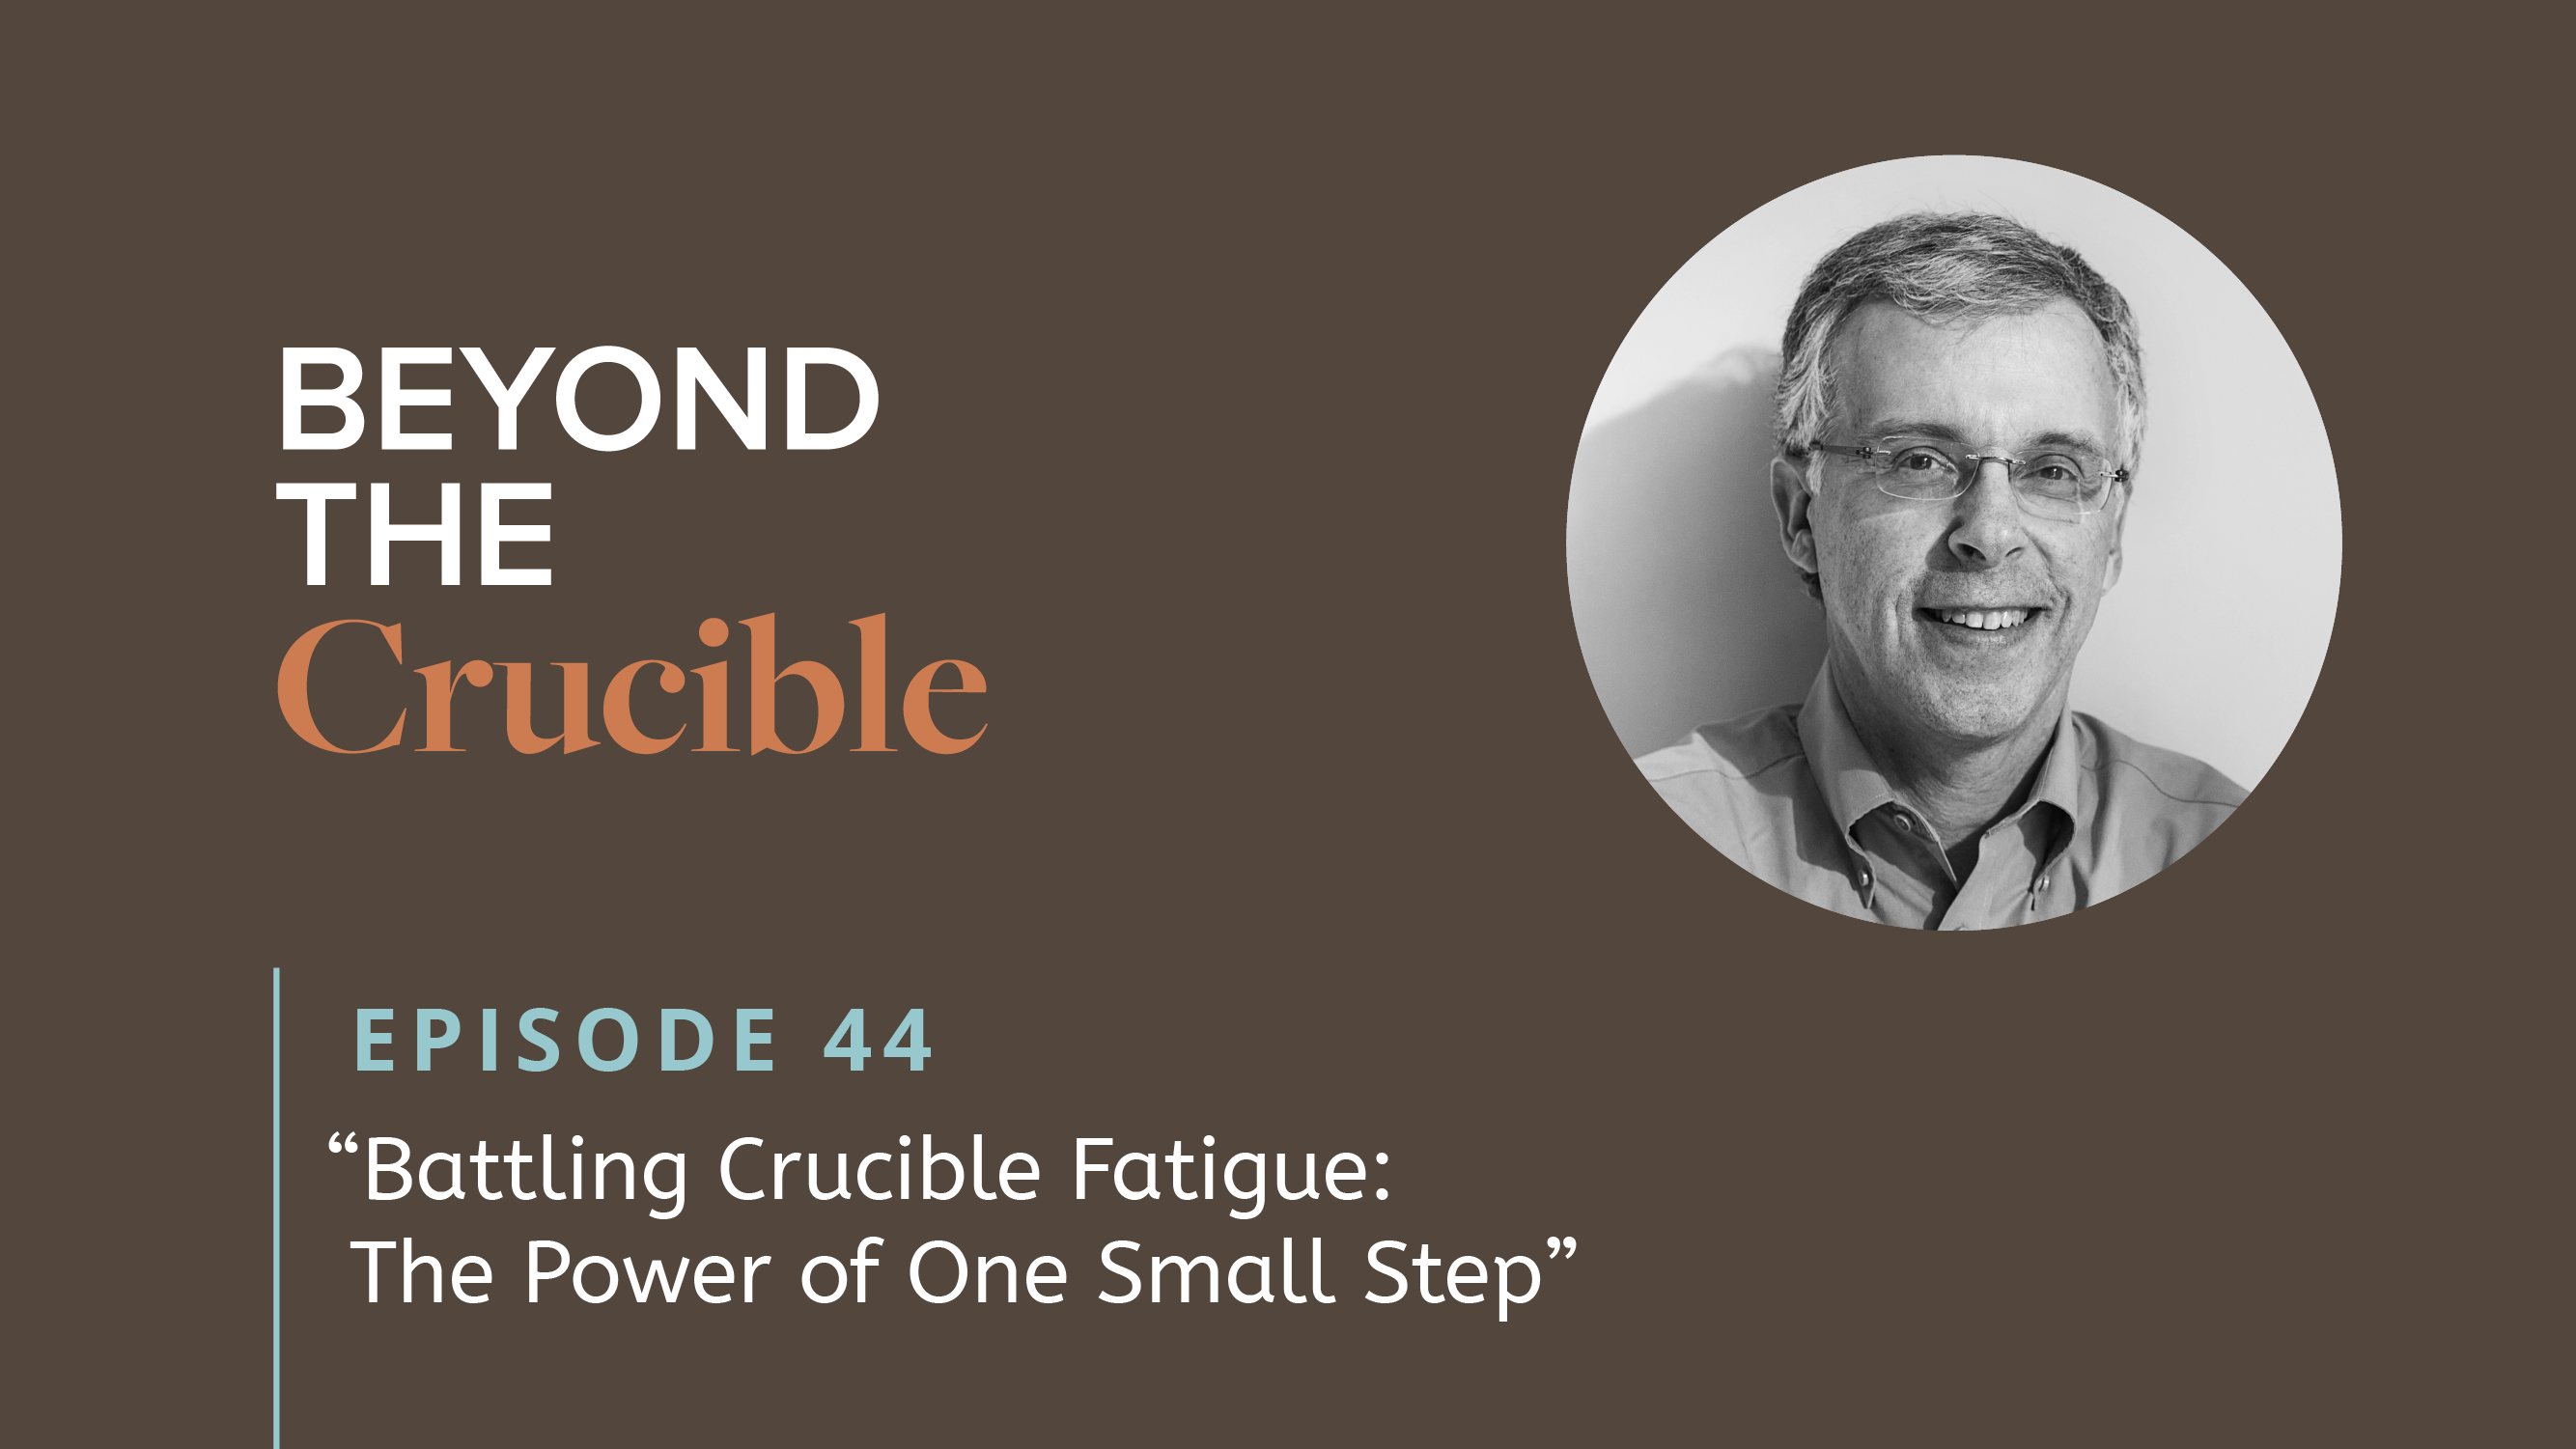 Battling Crucible Fatigue: The Power of One Small Step #44